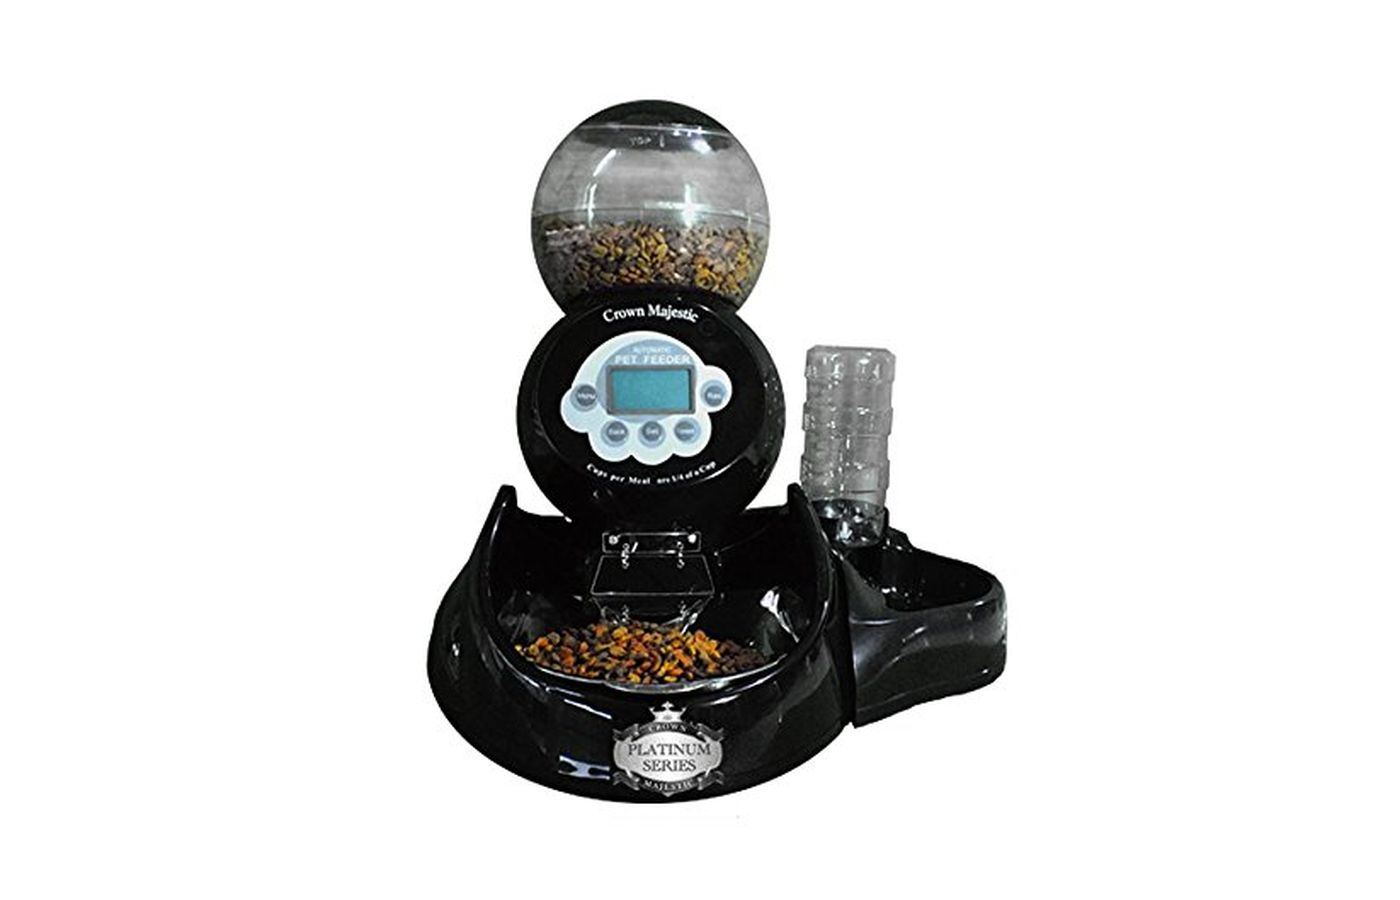 Crown Majestic Platinum Automatic Cat Feeder